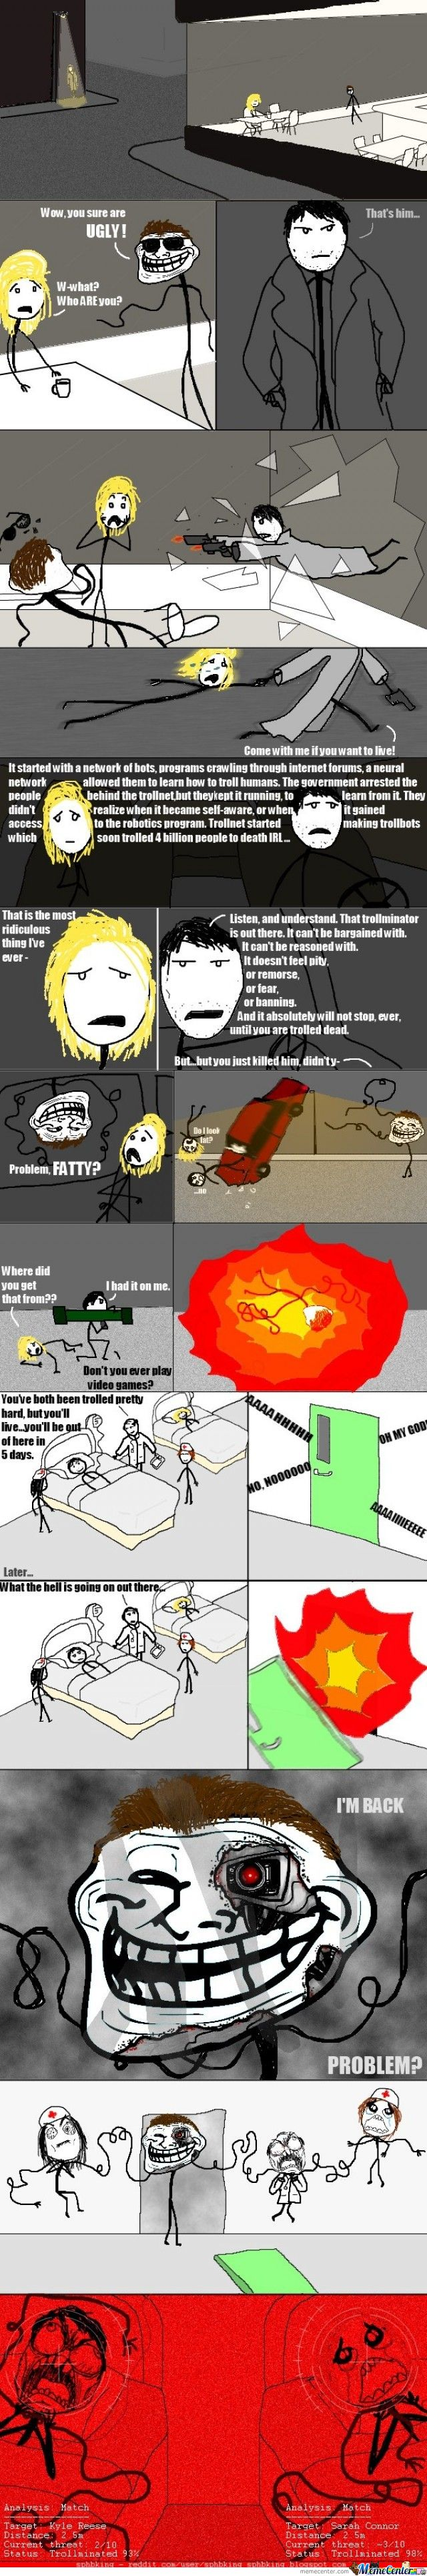 The Trollface Story: Part 1